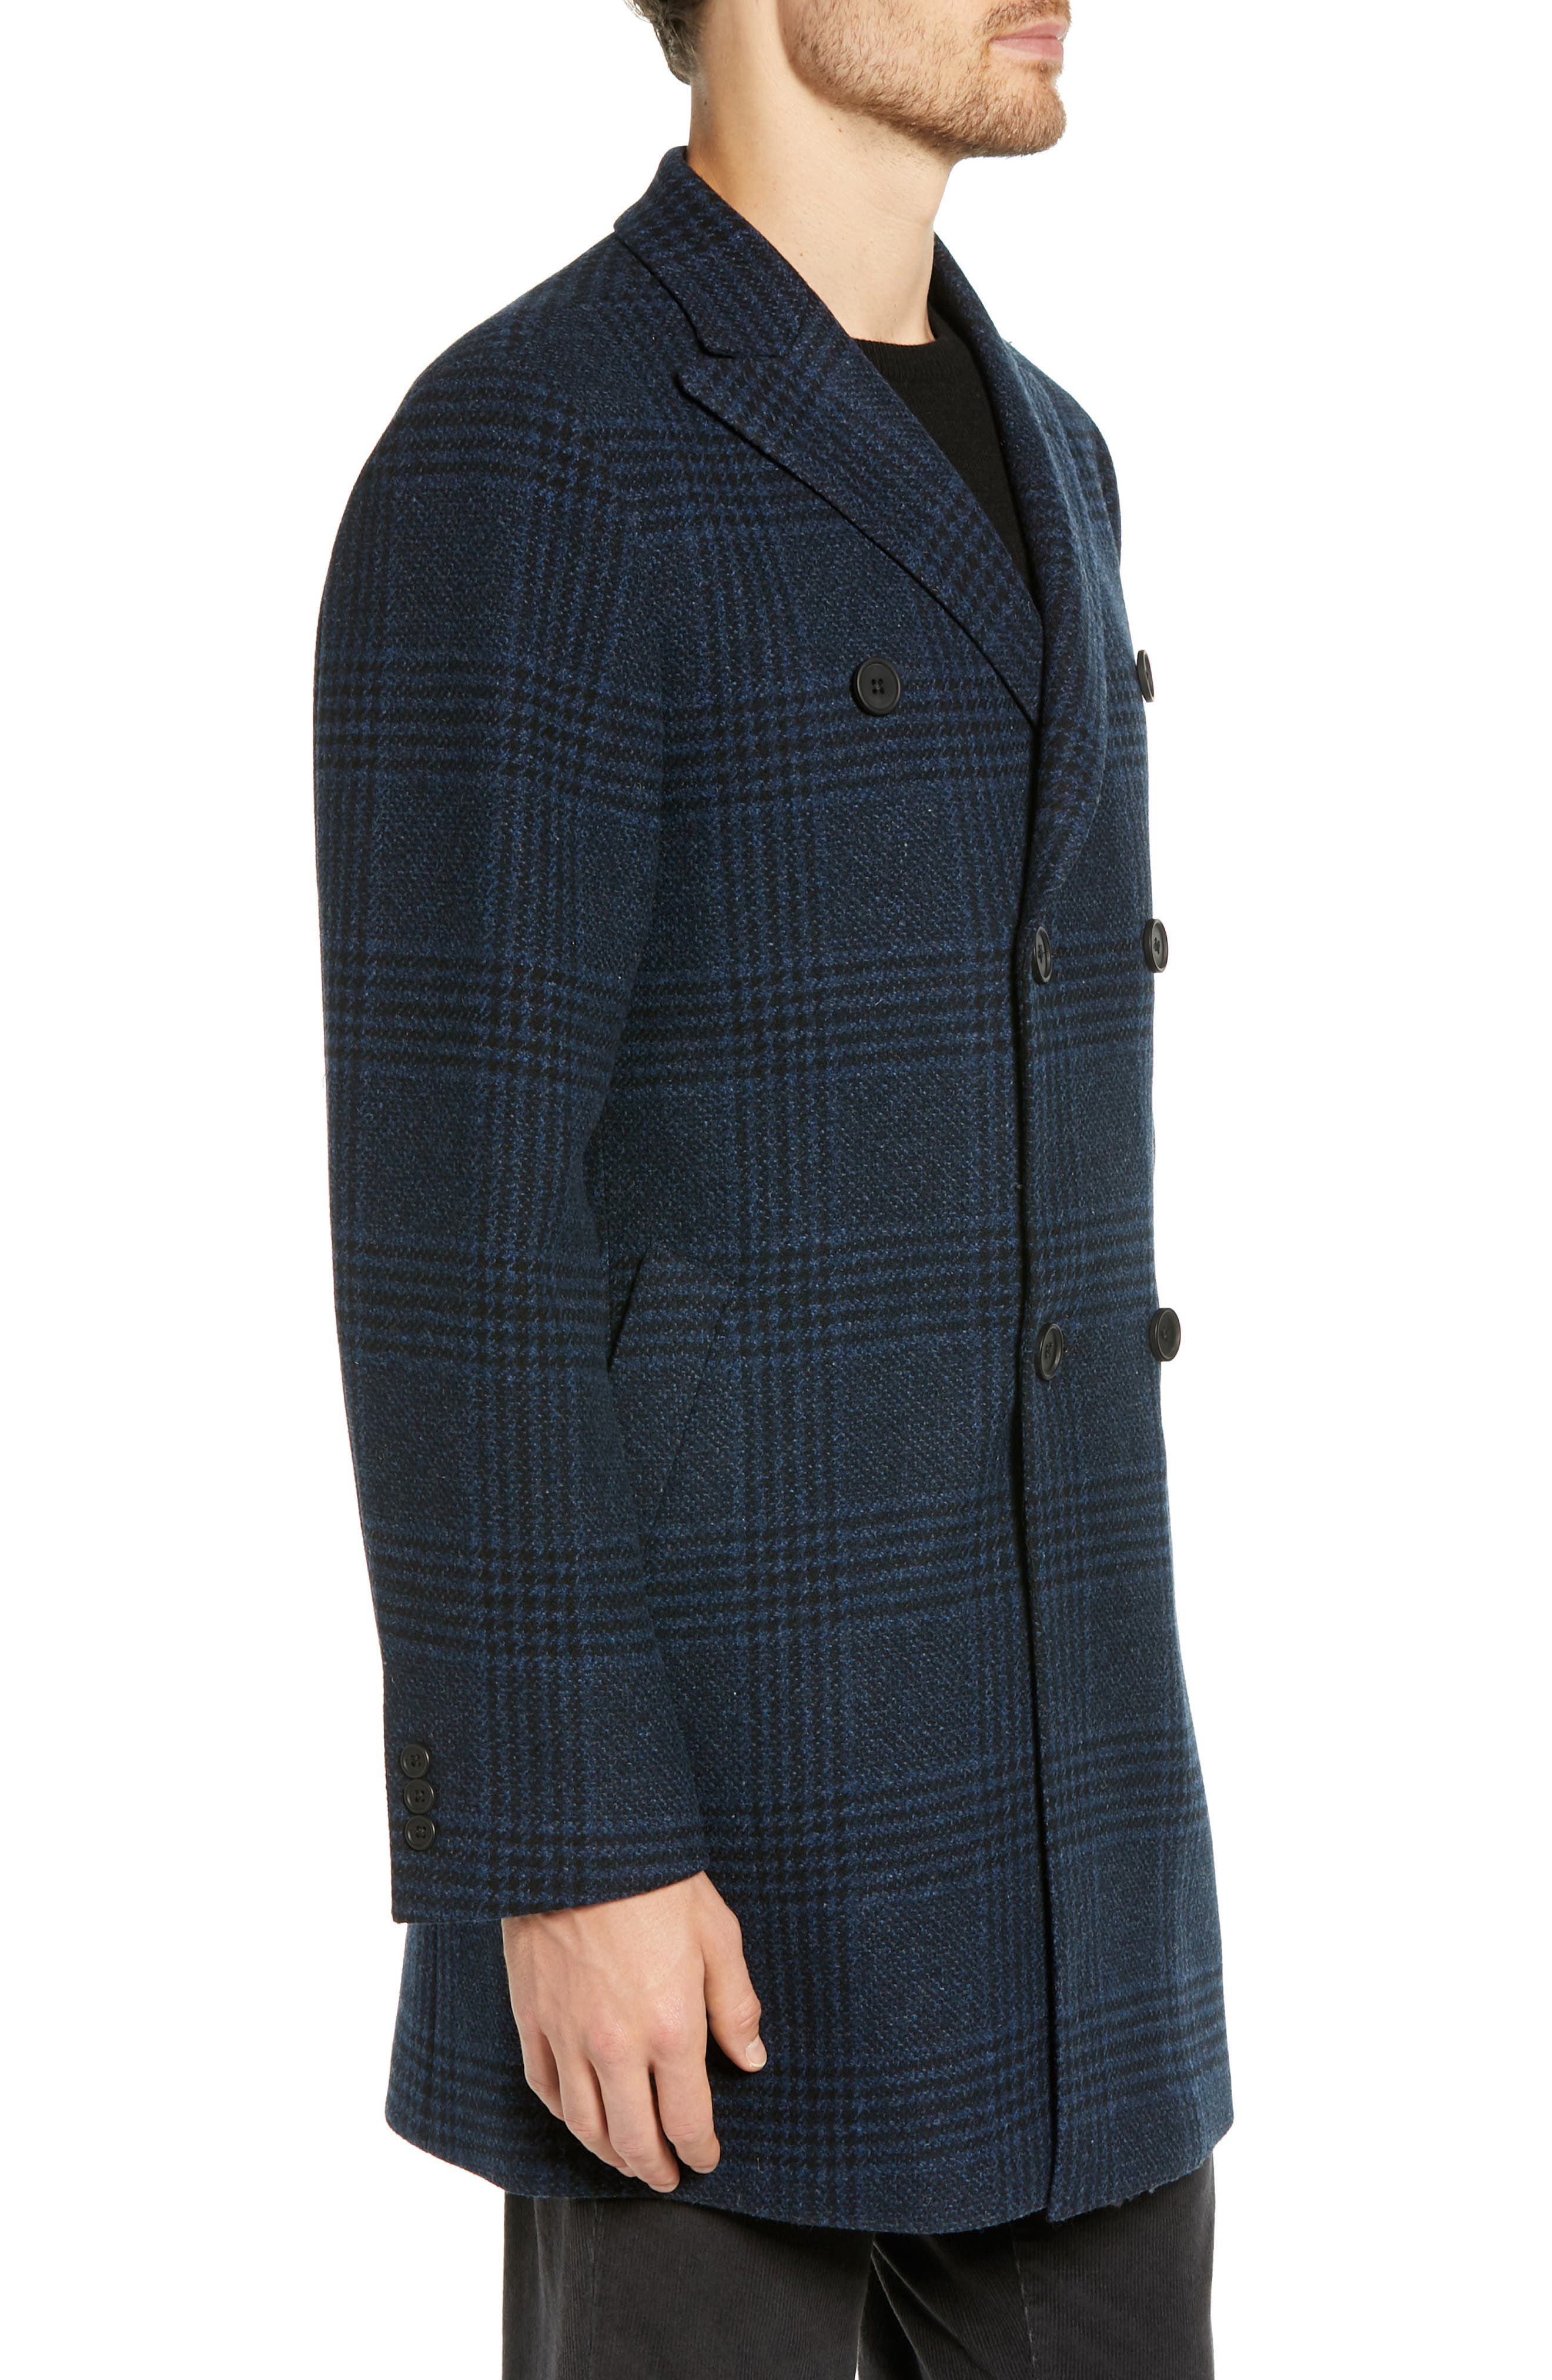 Jackson Extra Trim Fit Wool Overcoat,                             Alternate thumbnail 3, color,                             NAVY